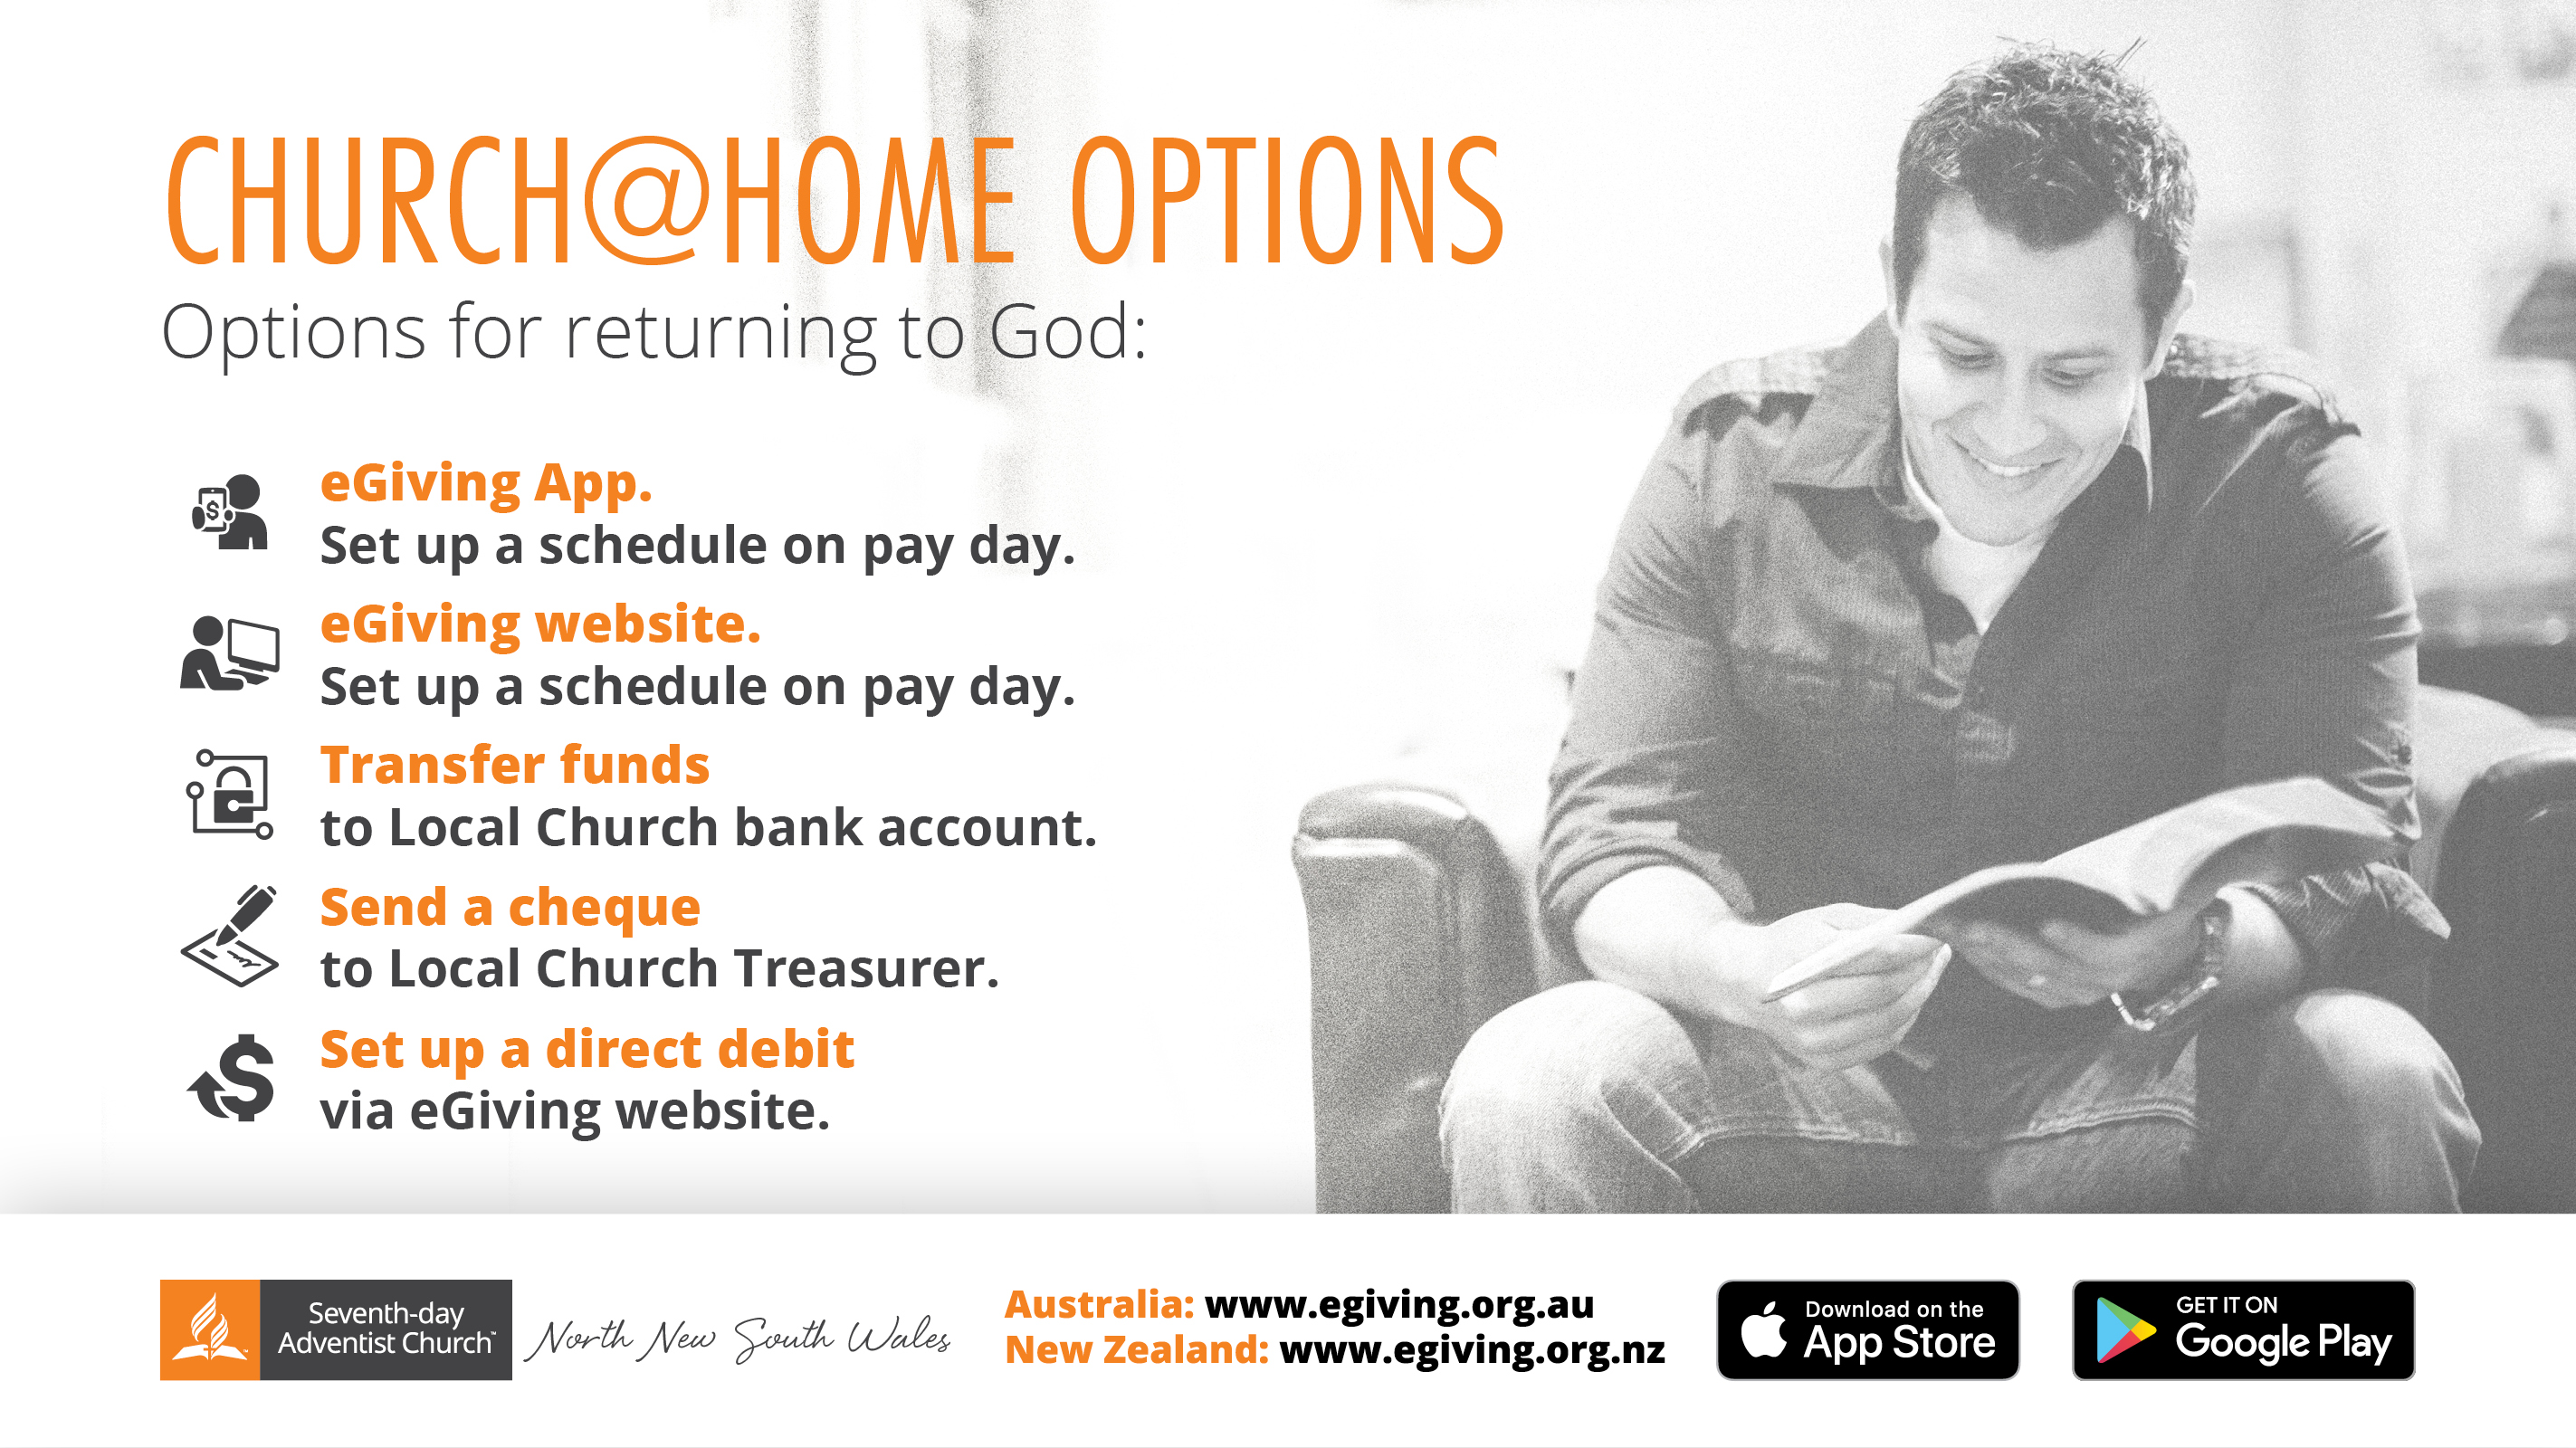 Options for giving tithes and offerings